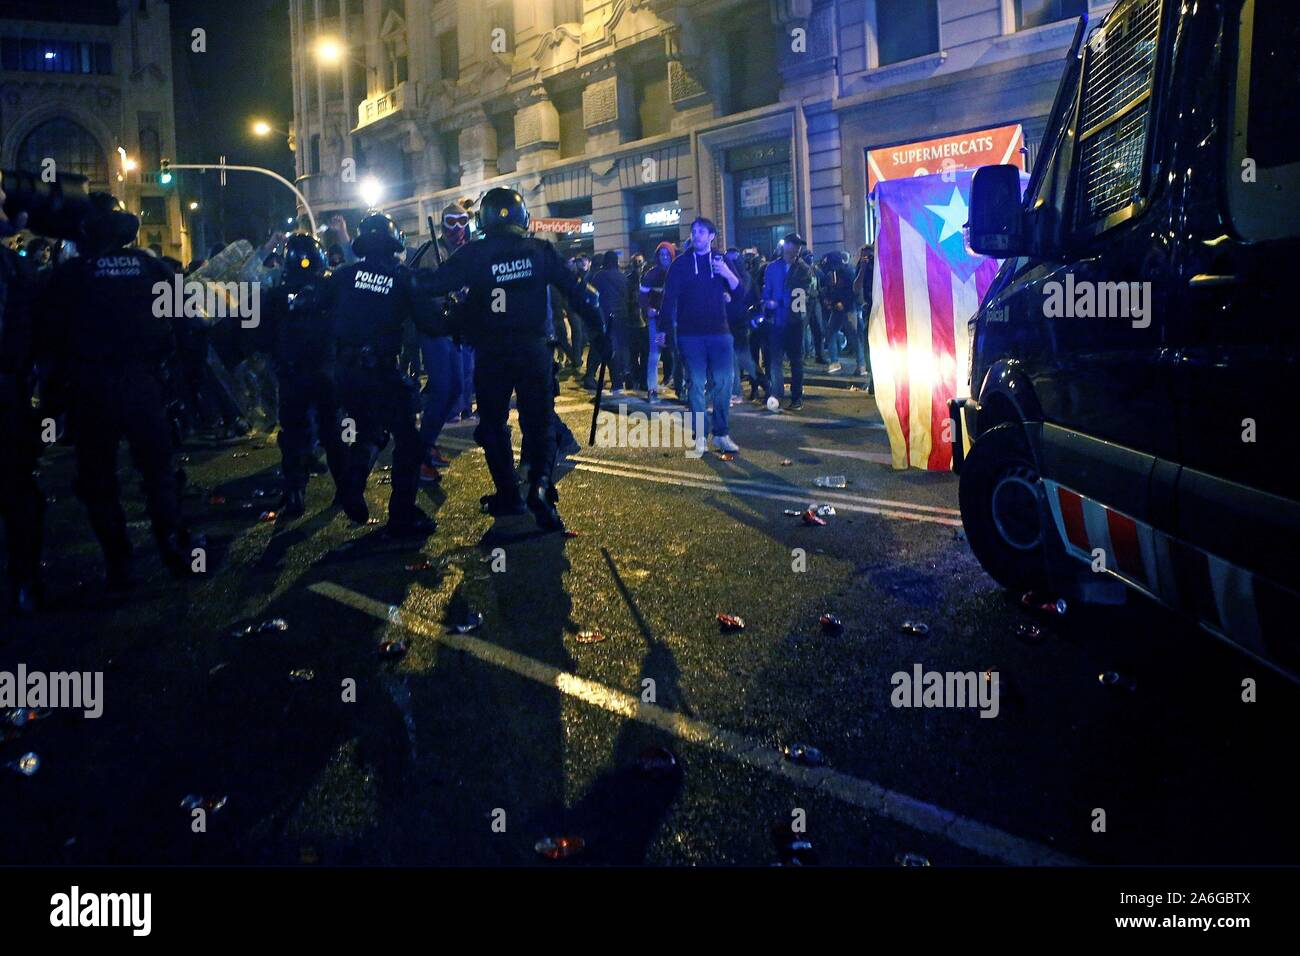 Barcelona, Spain. 26th Oct, 2019. Protesters clash with riot police members during a protest in Barcelona, Spain, 26 October 2019. Catalonia region in Spain is witnessing massive demonstrations and riots against the Supreme Court ruling of prison terms against the Catalan political leaders accused of organizing the Catalan illegal referendum held in October 2017. EFE/ALEJANDRO GARCIA Credit: EFE News Agency/Alamy Live News Stock Photo